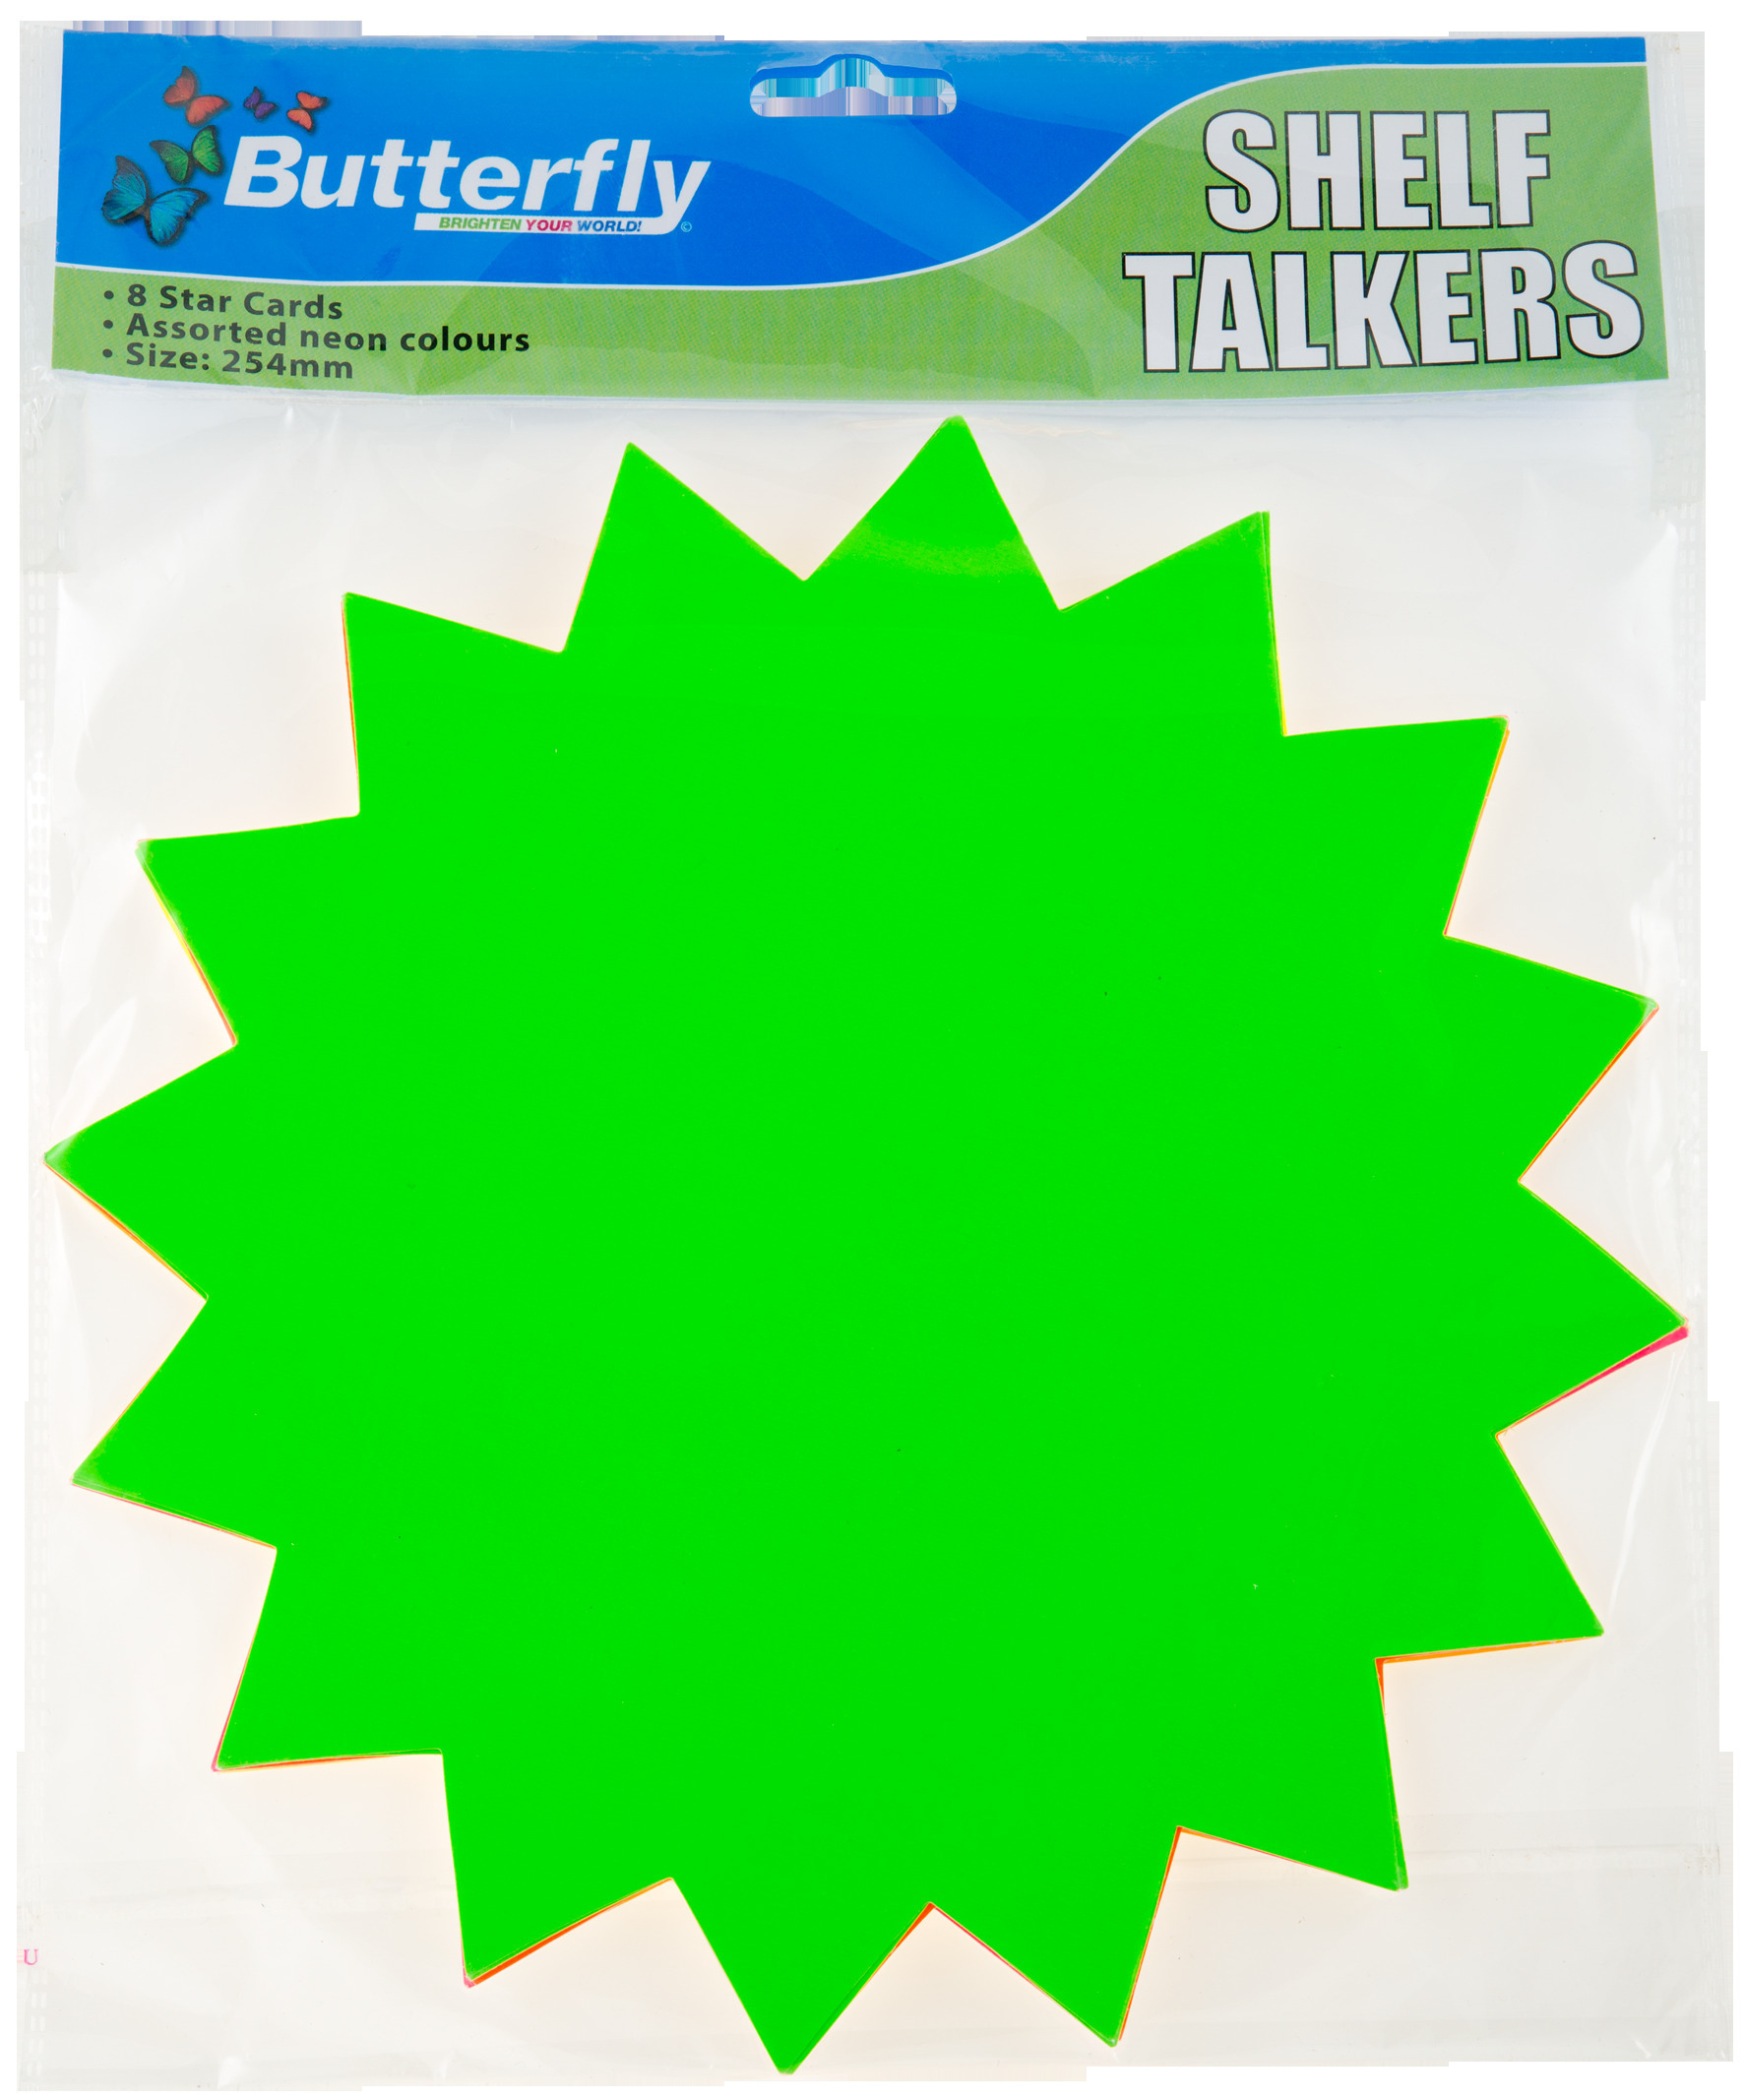 Shelf Talkers - Card Stars 8 (254mm)